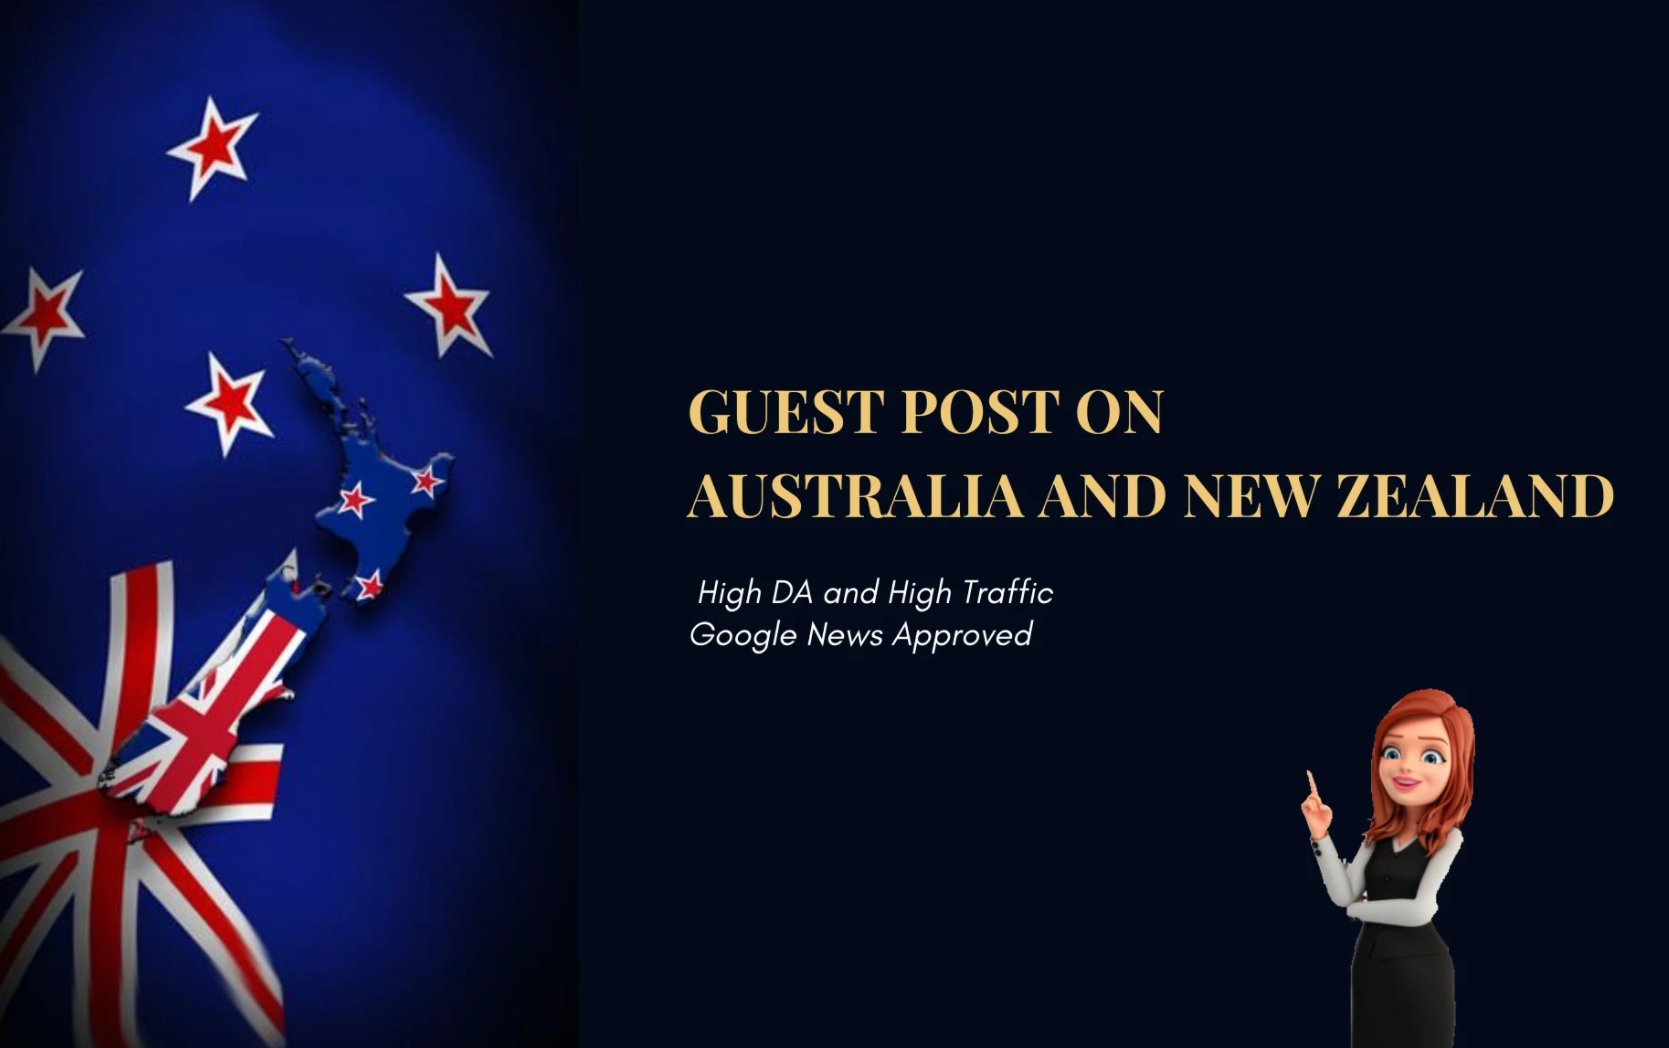 I will do guest posting on australia and new zealand sites